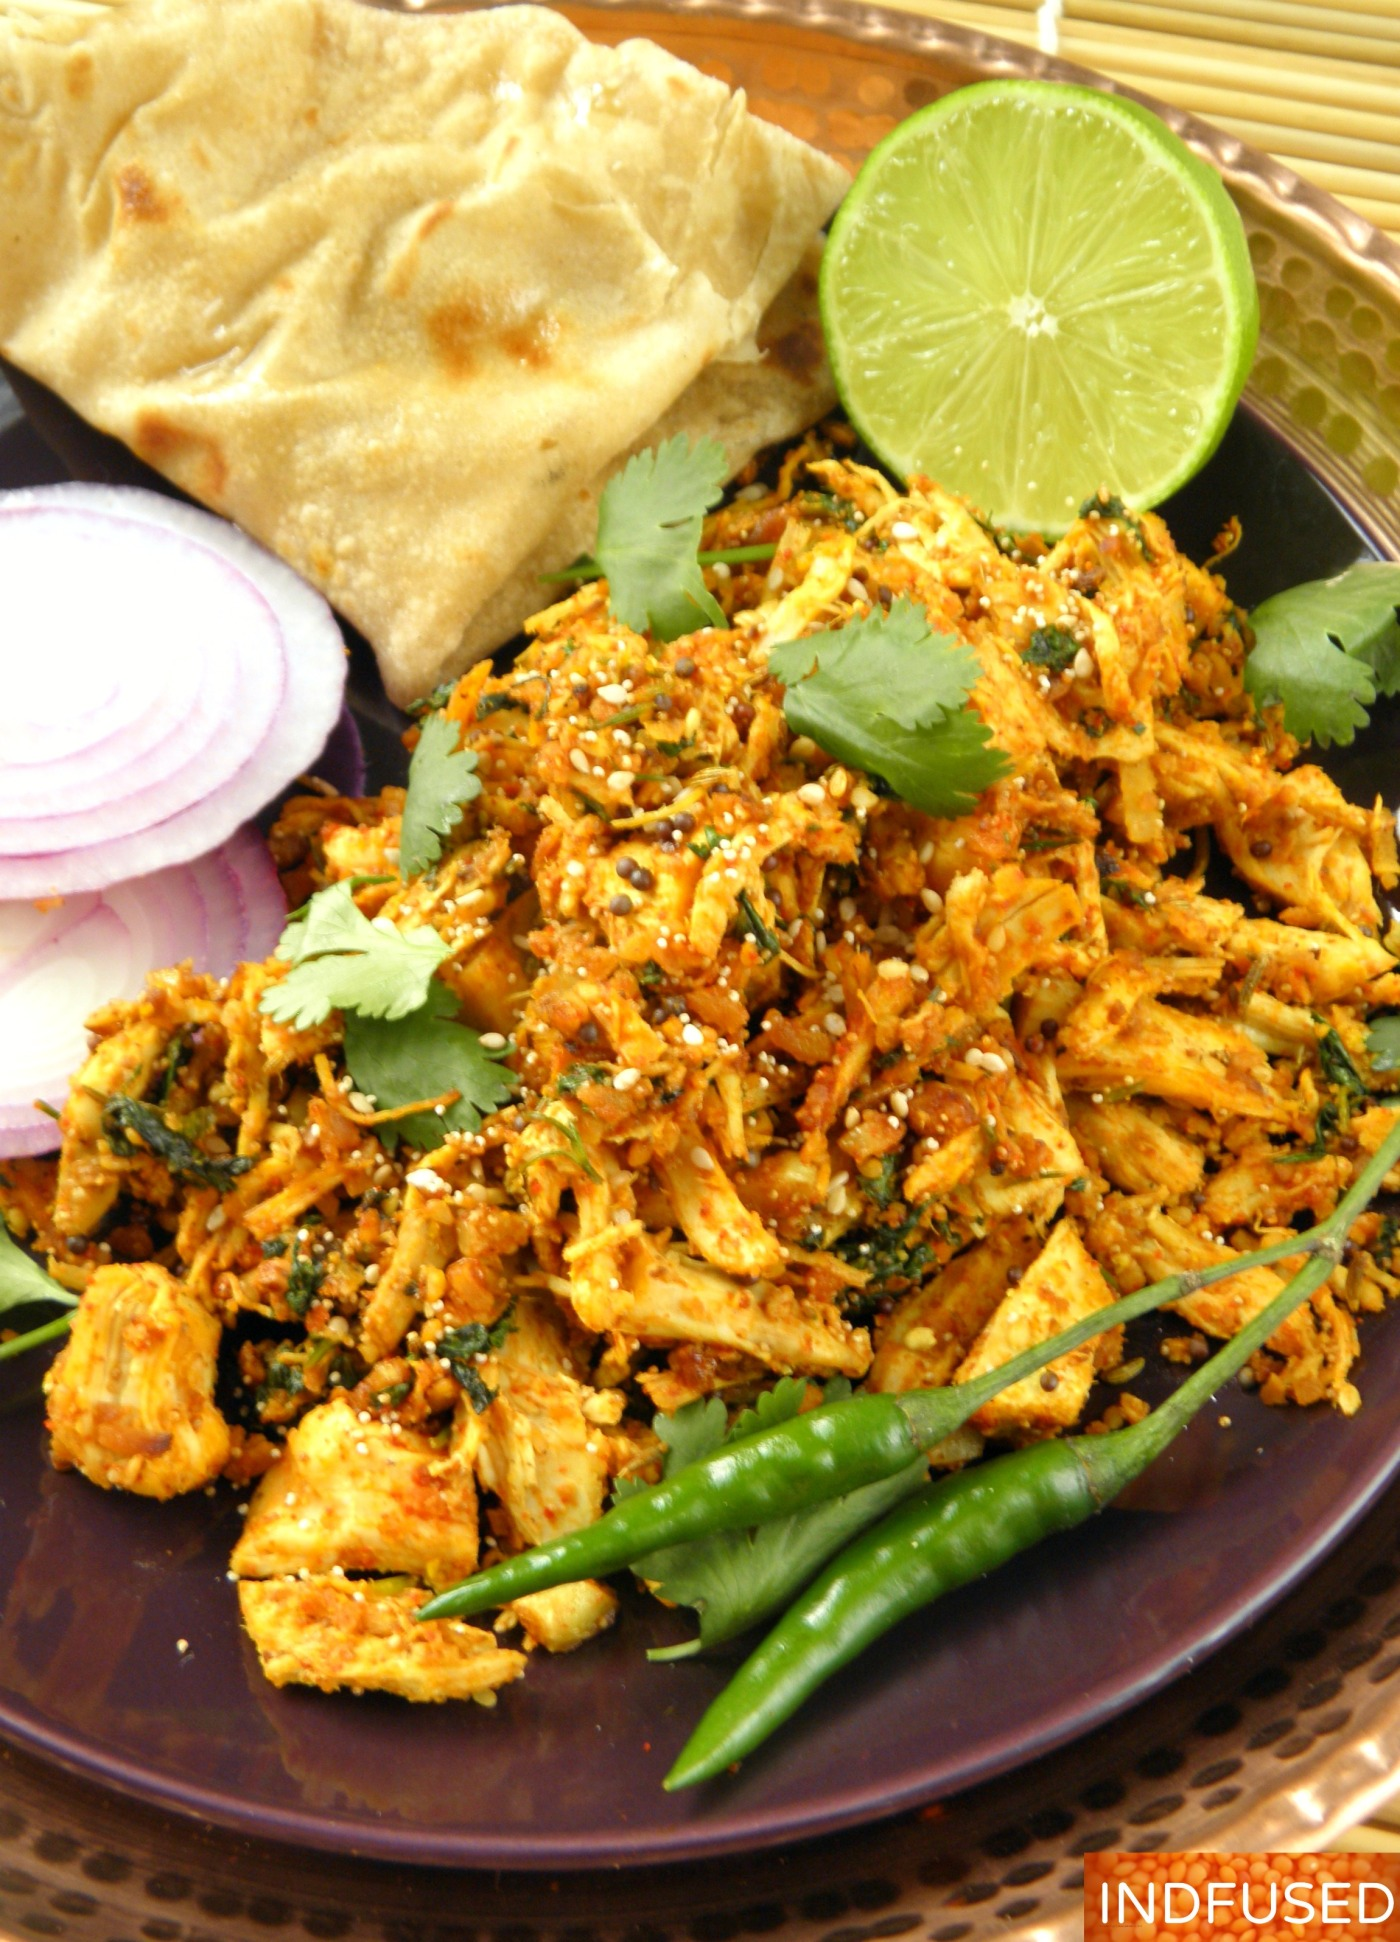 Simplified, shortcut, skinny recipe for a distinctly flavored tangy ,spicy Indian chicken entree, made using skinless boneless rotisserie chicken breast meat.